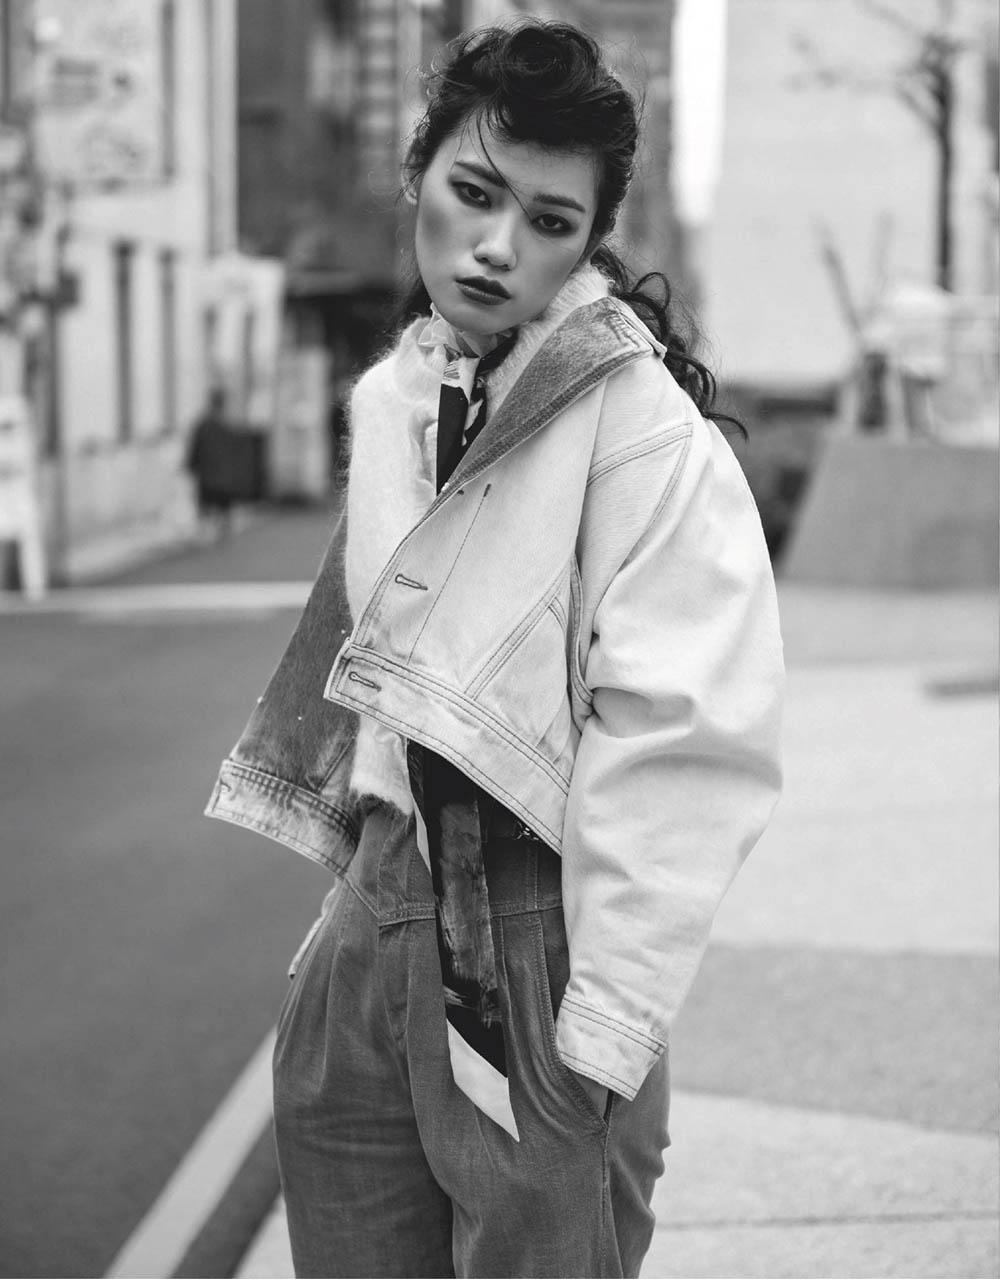 Meng Yu-Lai by Lan Chi Sheng for Vogue Taiwan February 2020